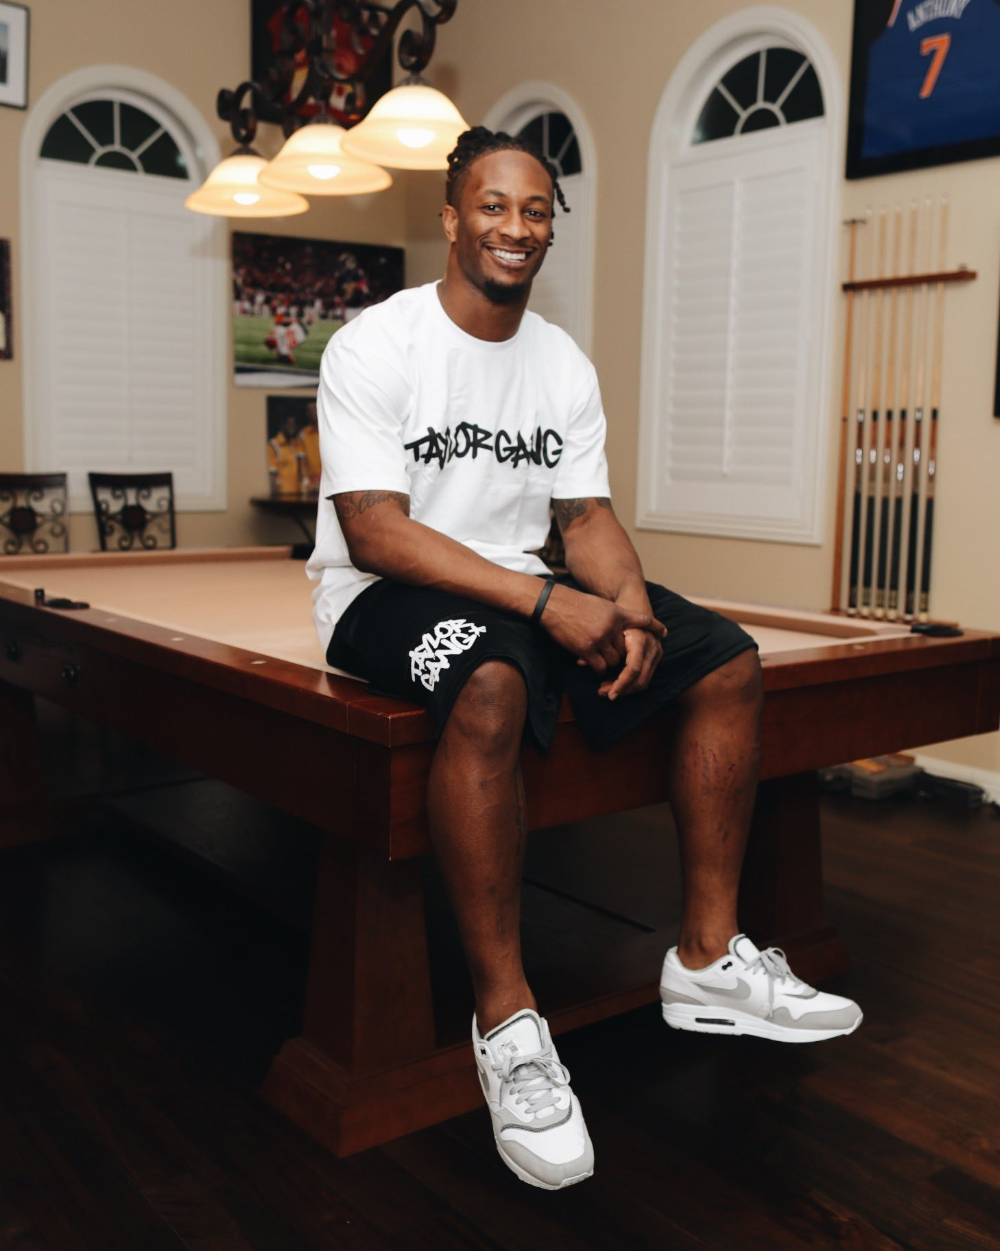 Taylor Gang On Twitter Lounge Outfit Taylors Gang Todd Gurley